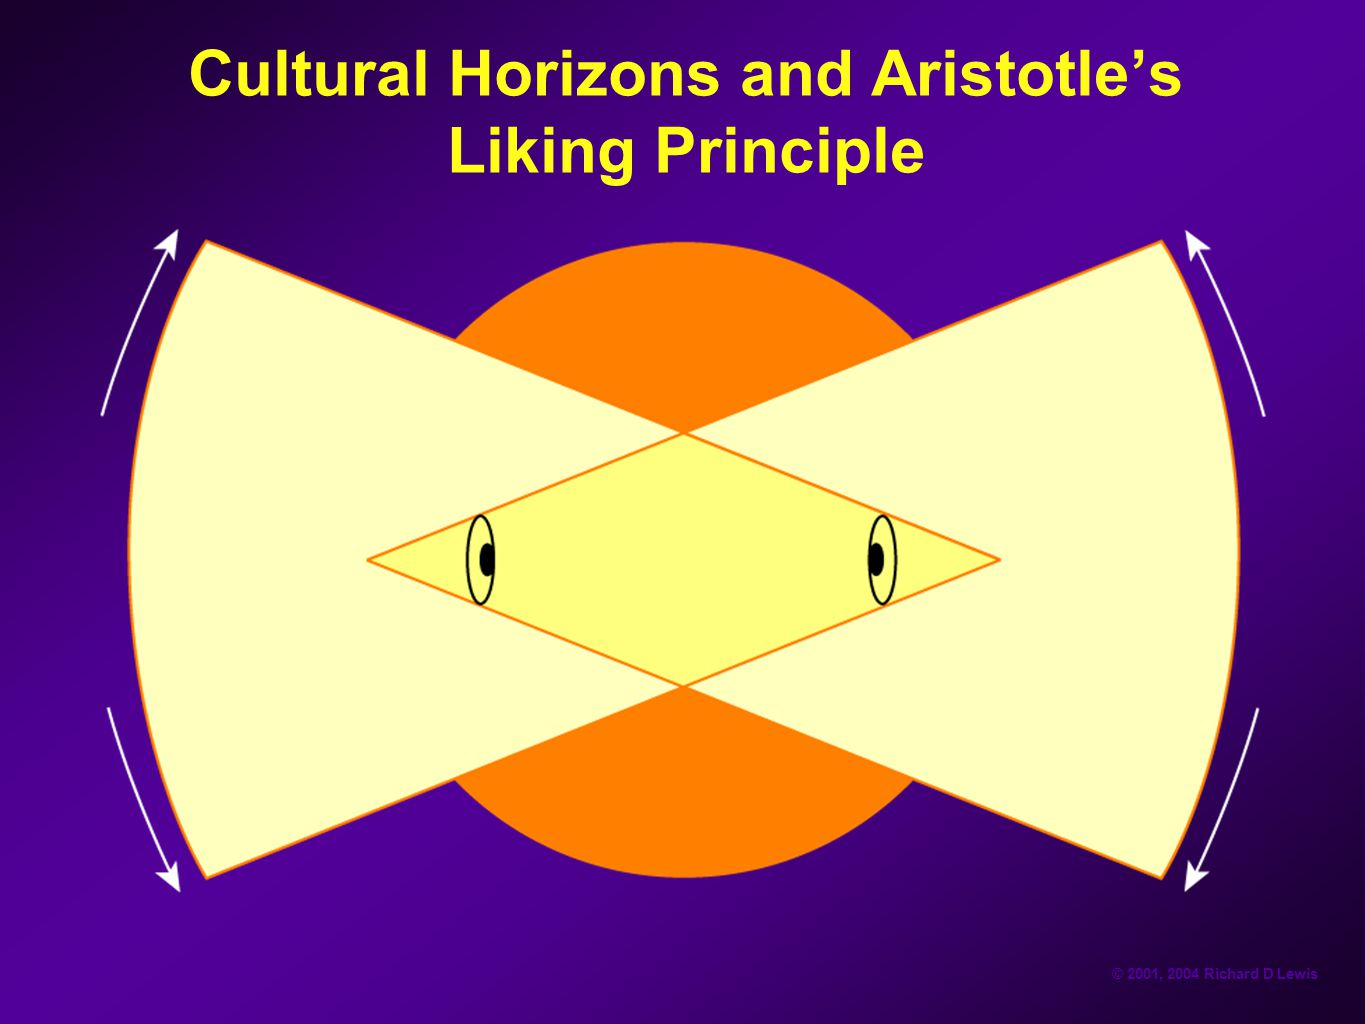 Cultural Horizons and Aristotle's Liking Principle